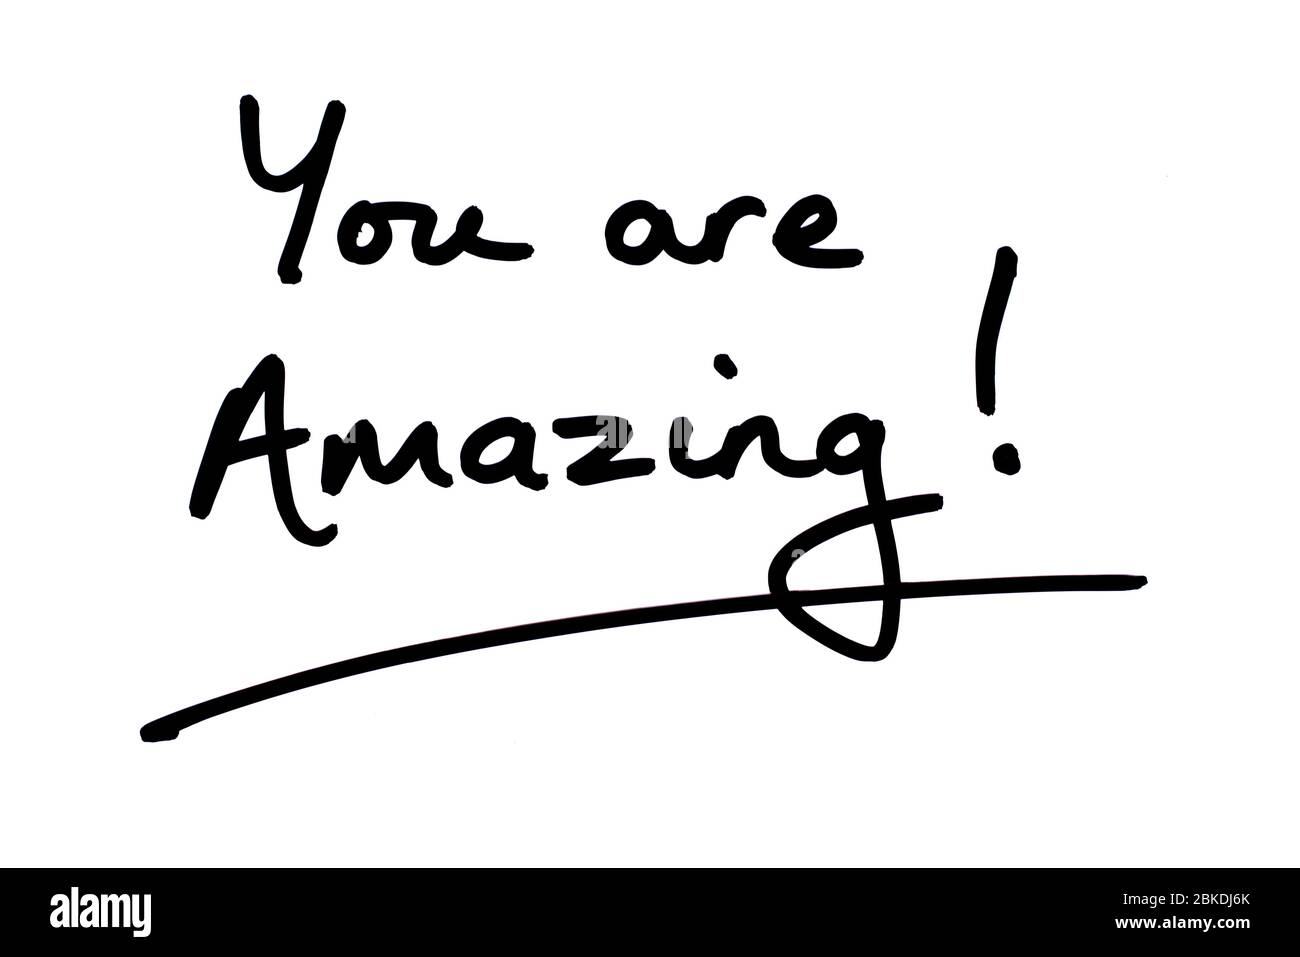 You are Amazing! handwritten on a white background. Stock Photo